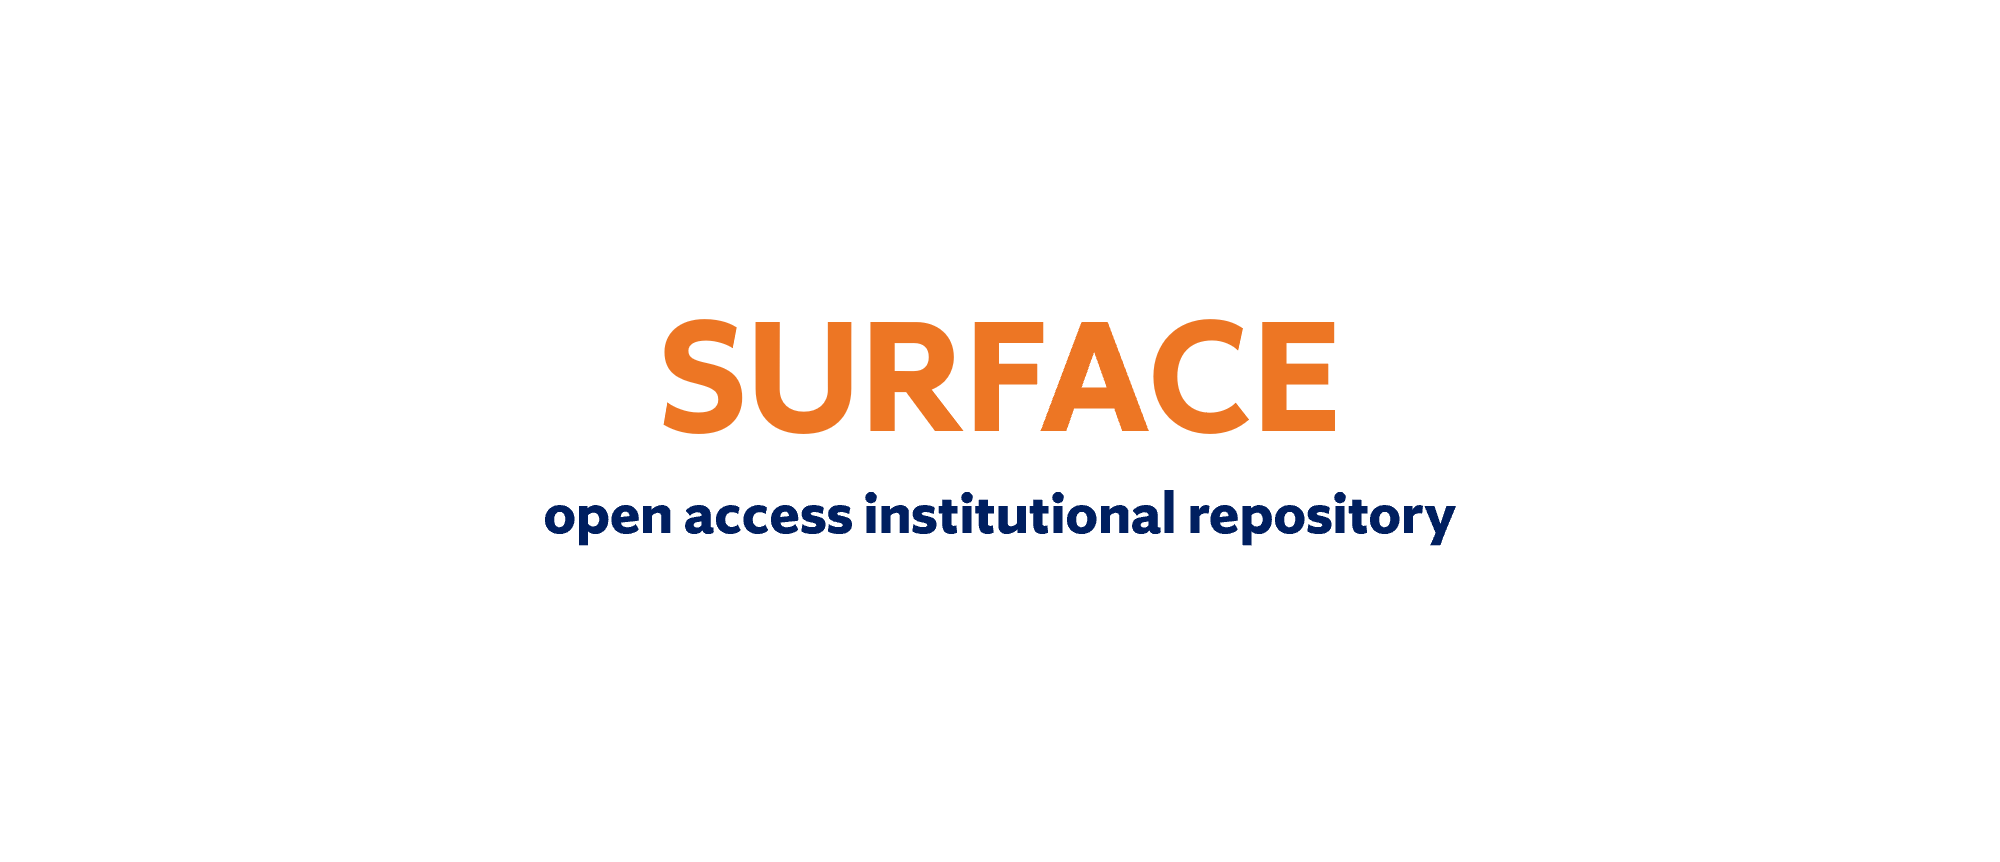 SURFACE open access institutional repository